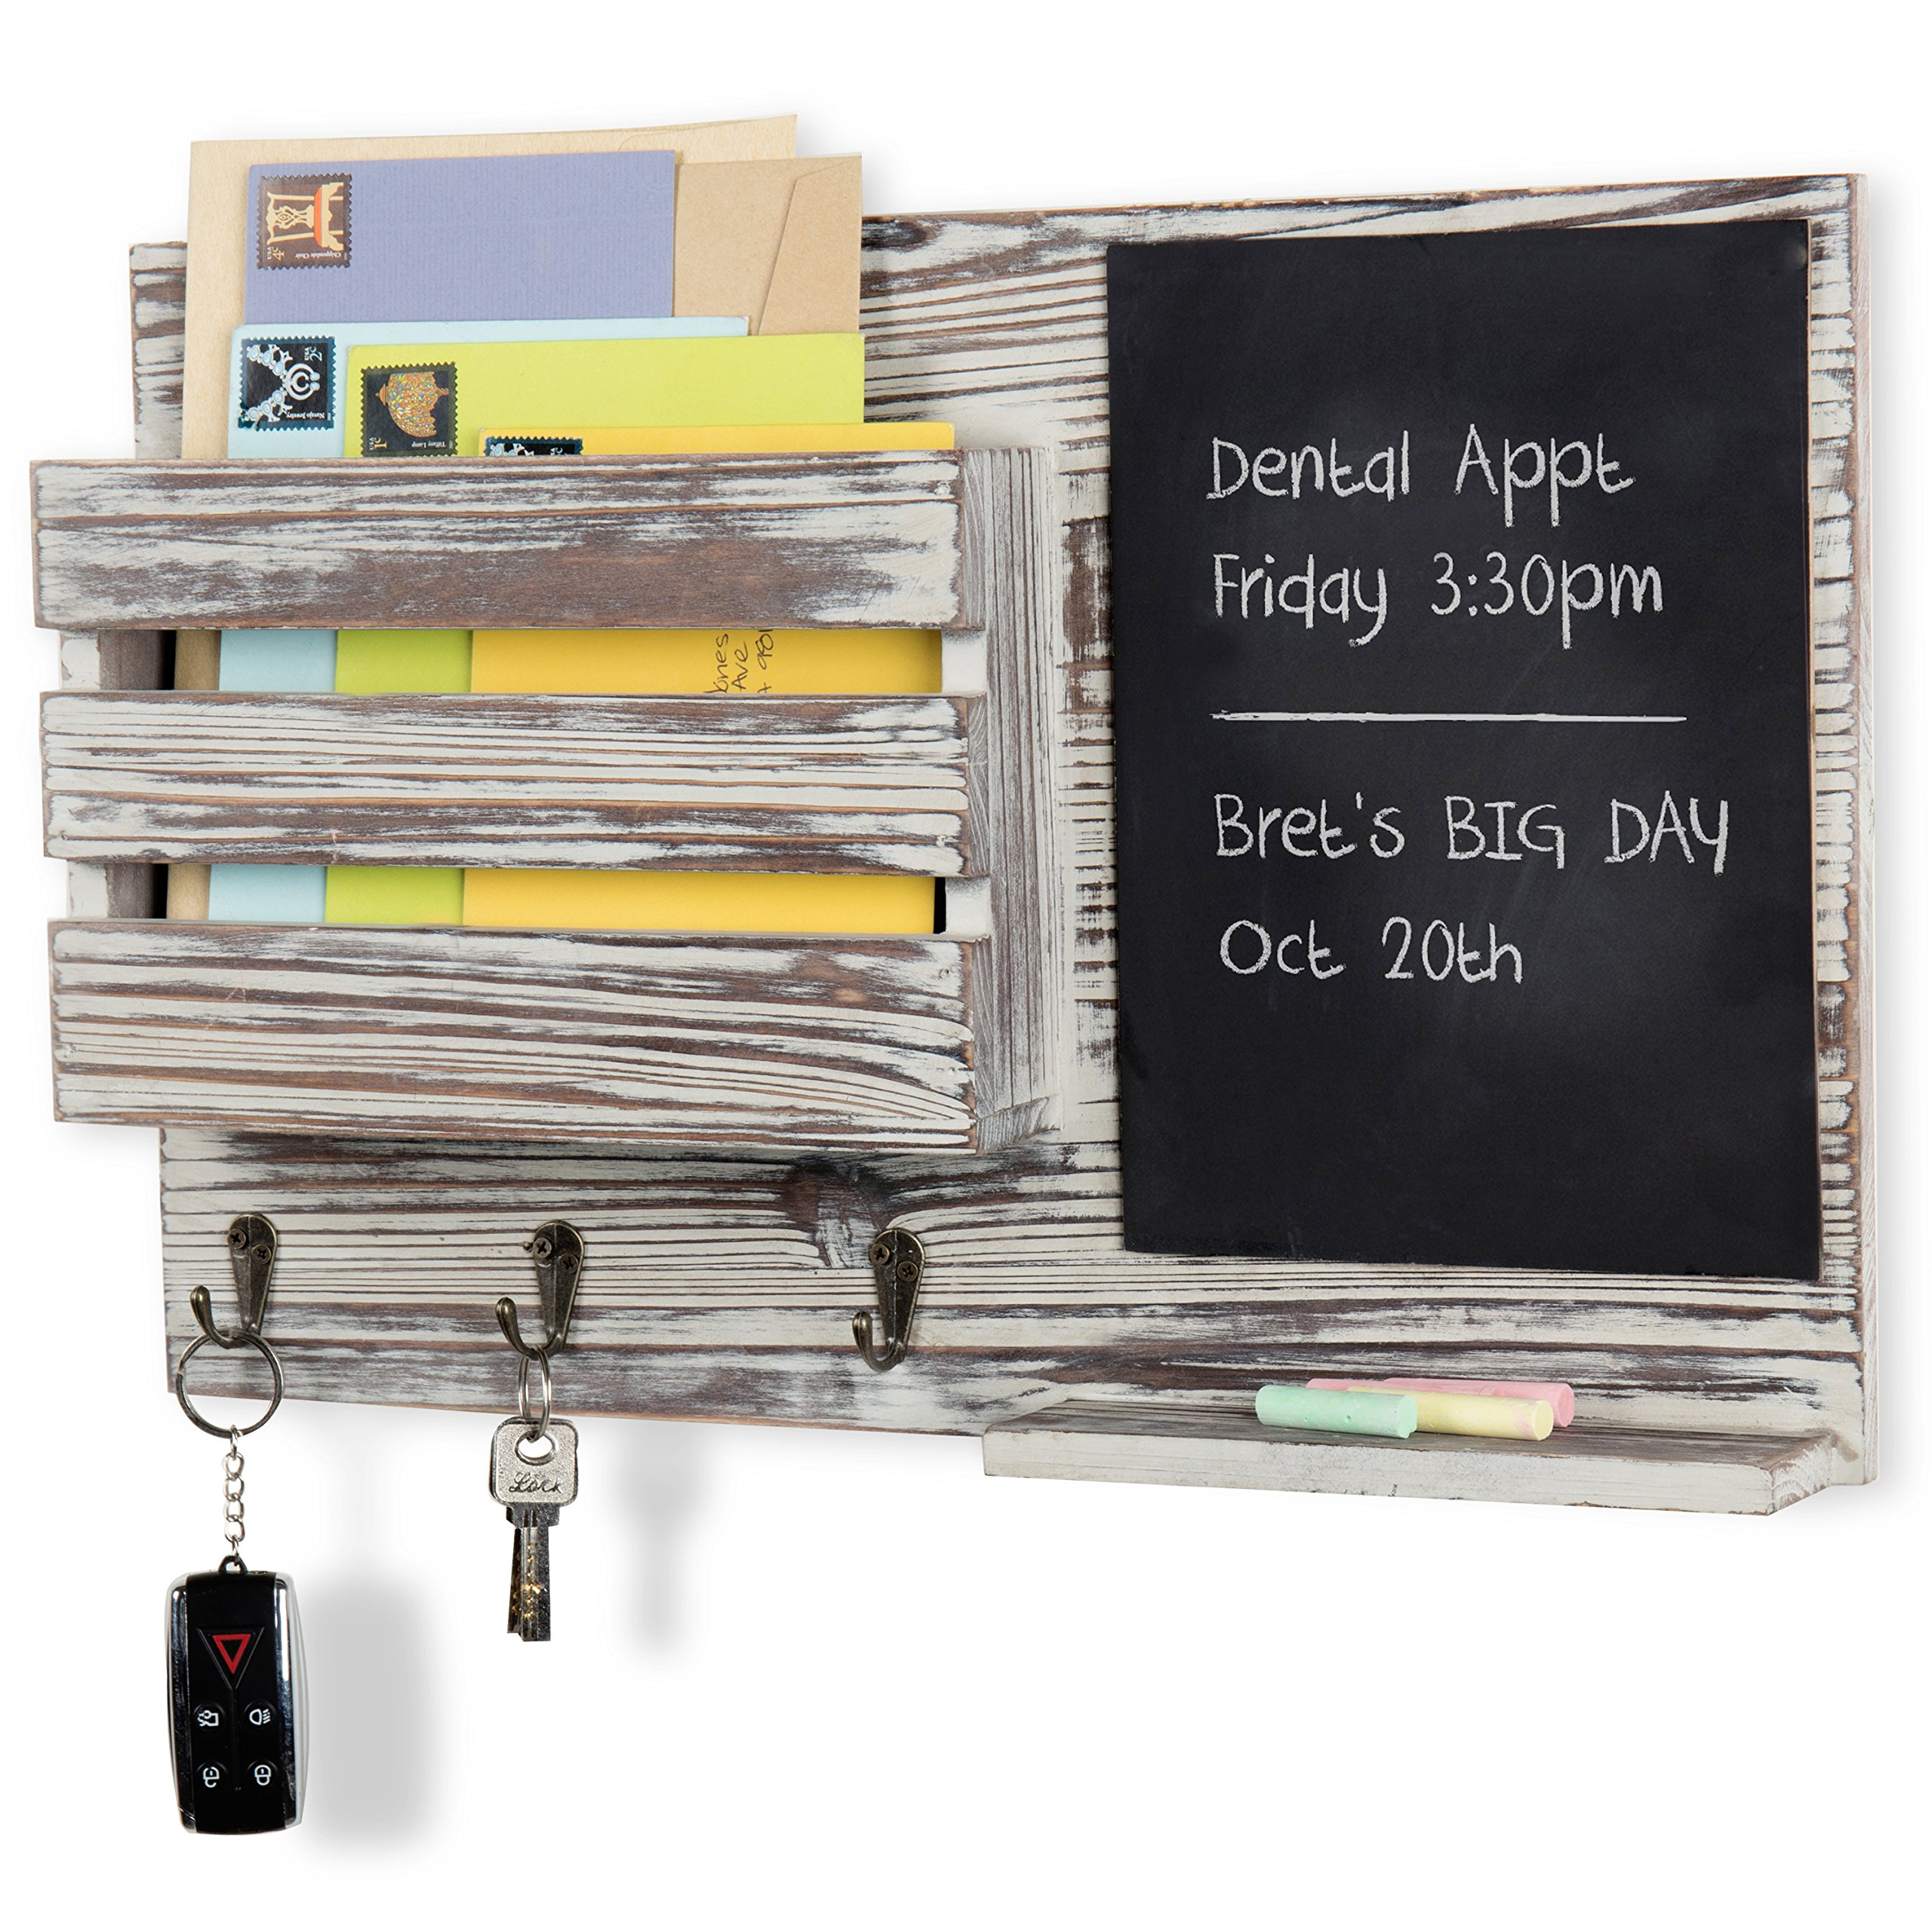 MyGift Torched Wood Wall-Mounted Mail Organizer with Chalkboard & 3 Key Hooks by MyGift